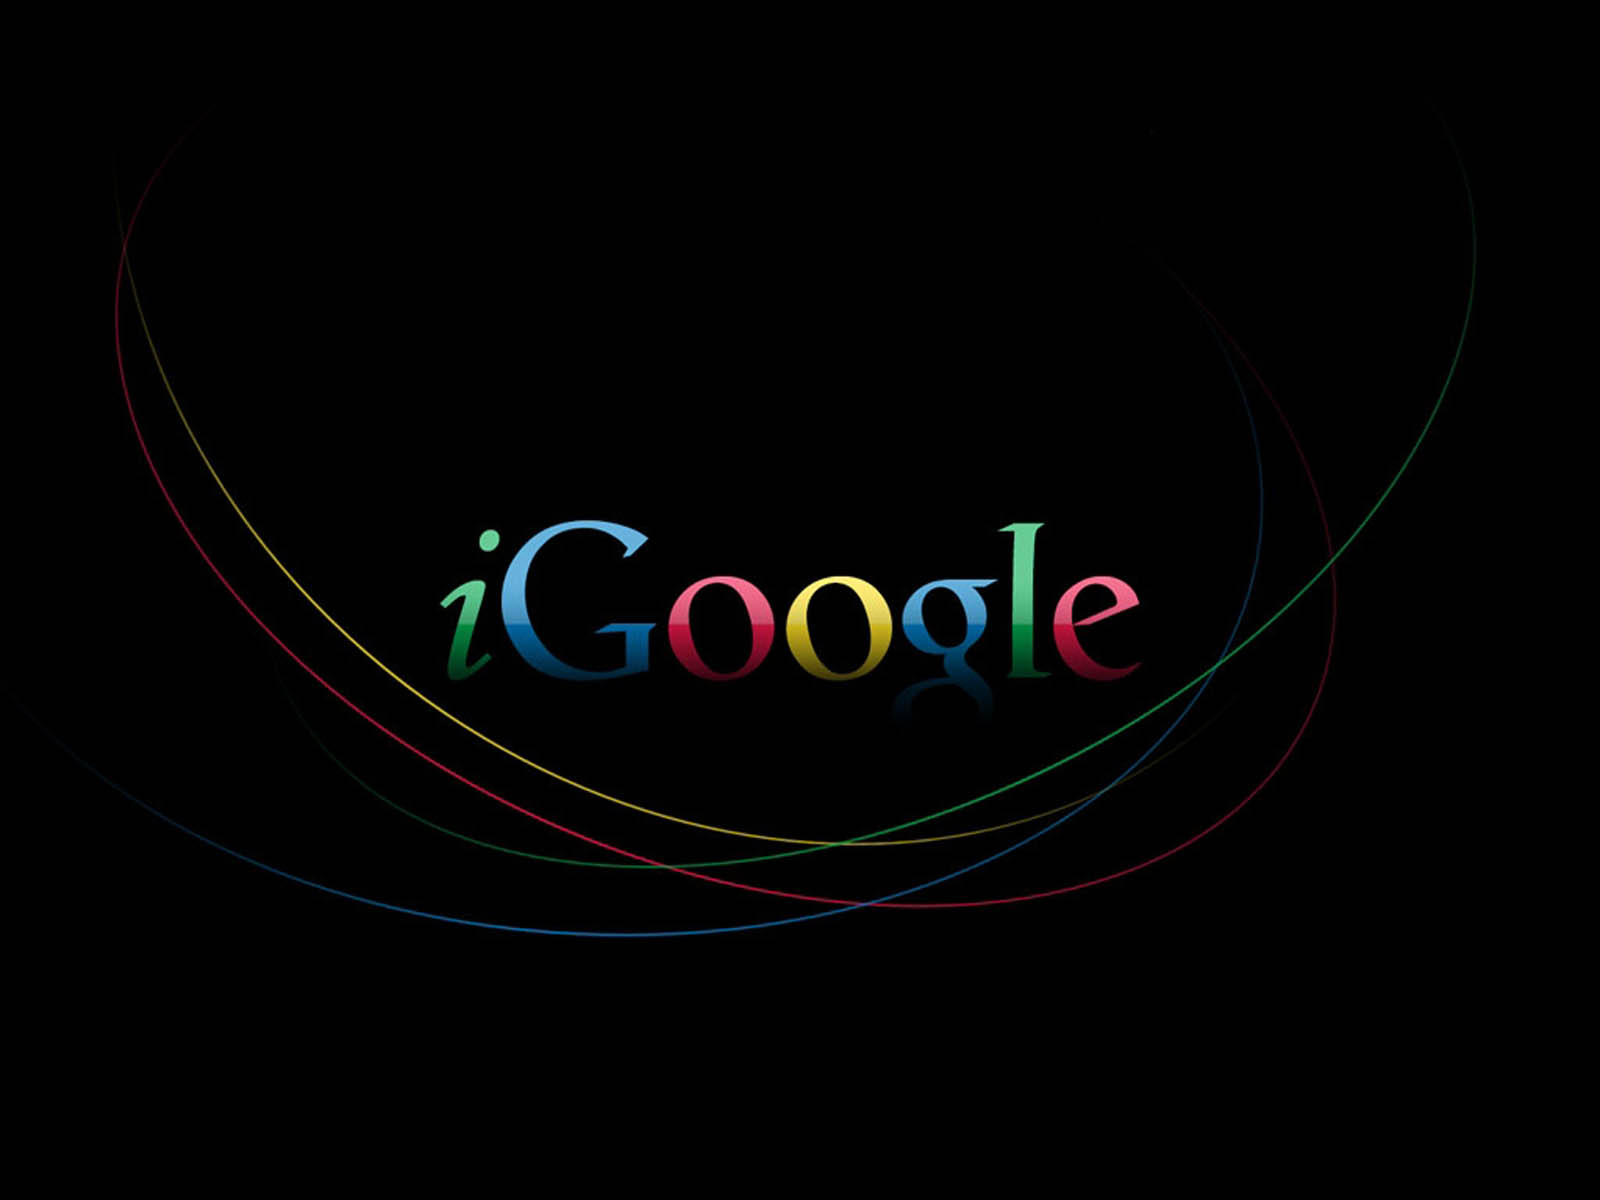 google background wallpaper 968 1600x1200